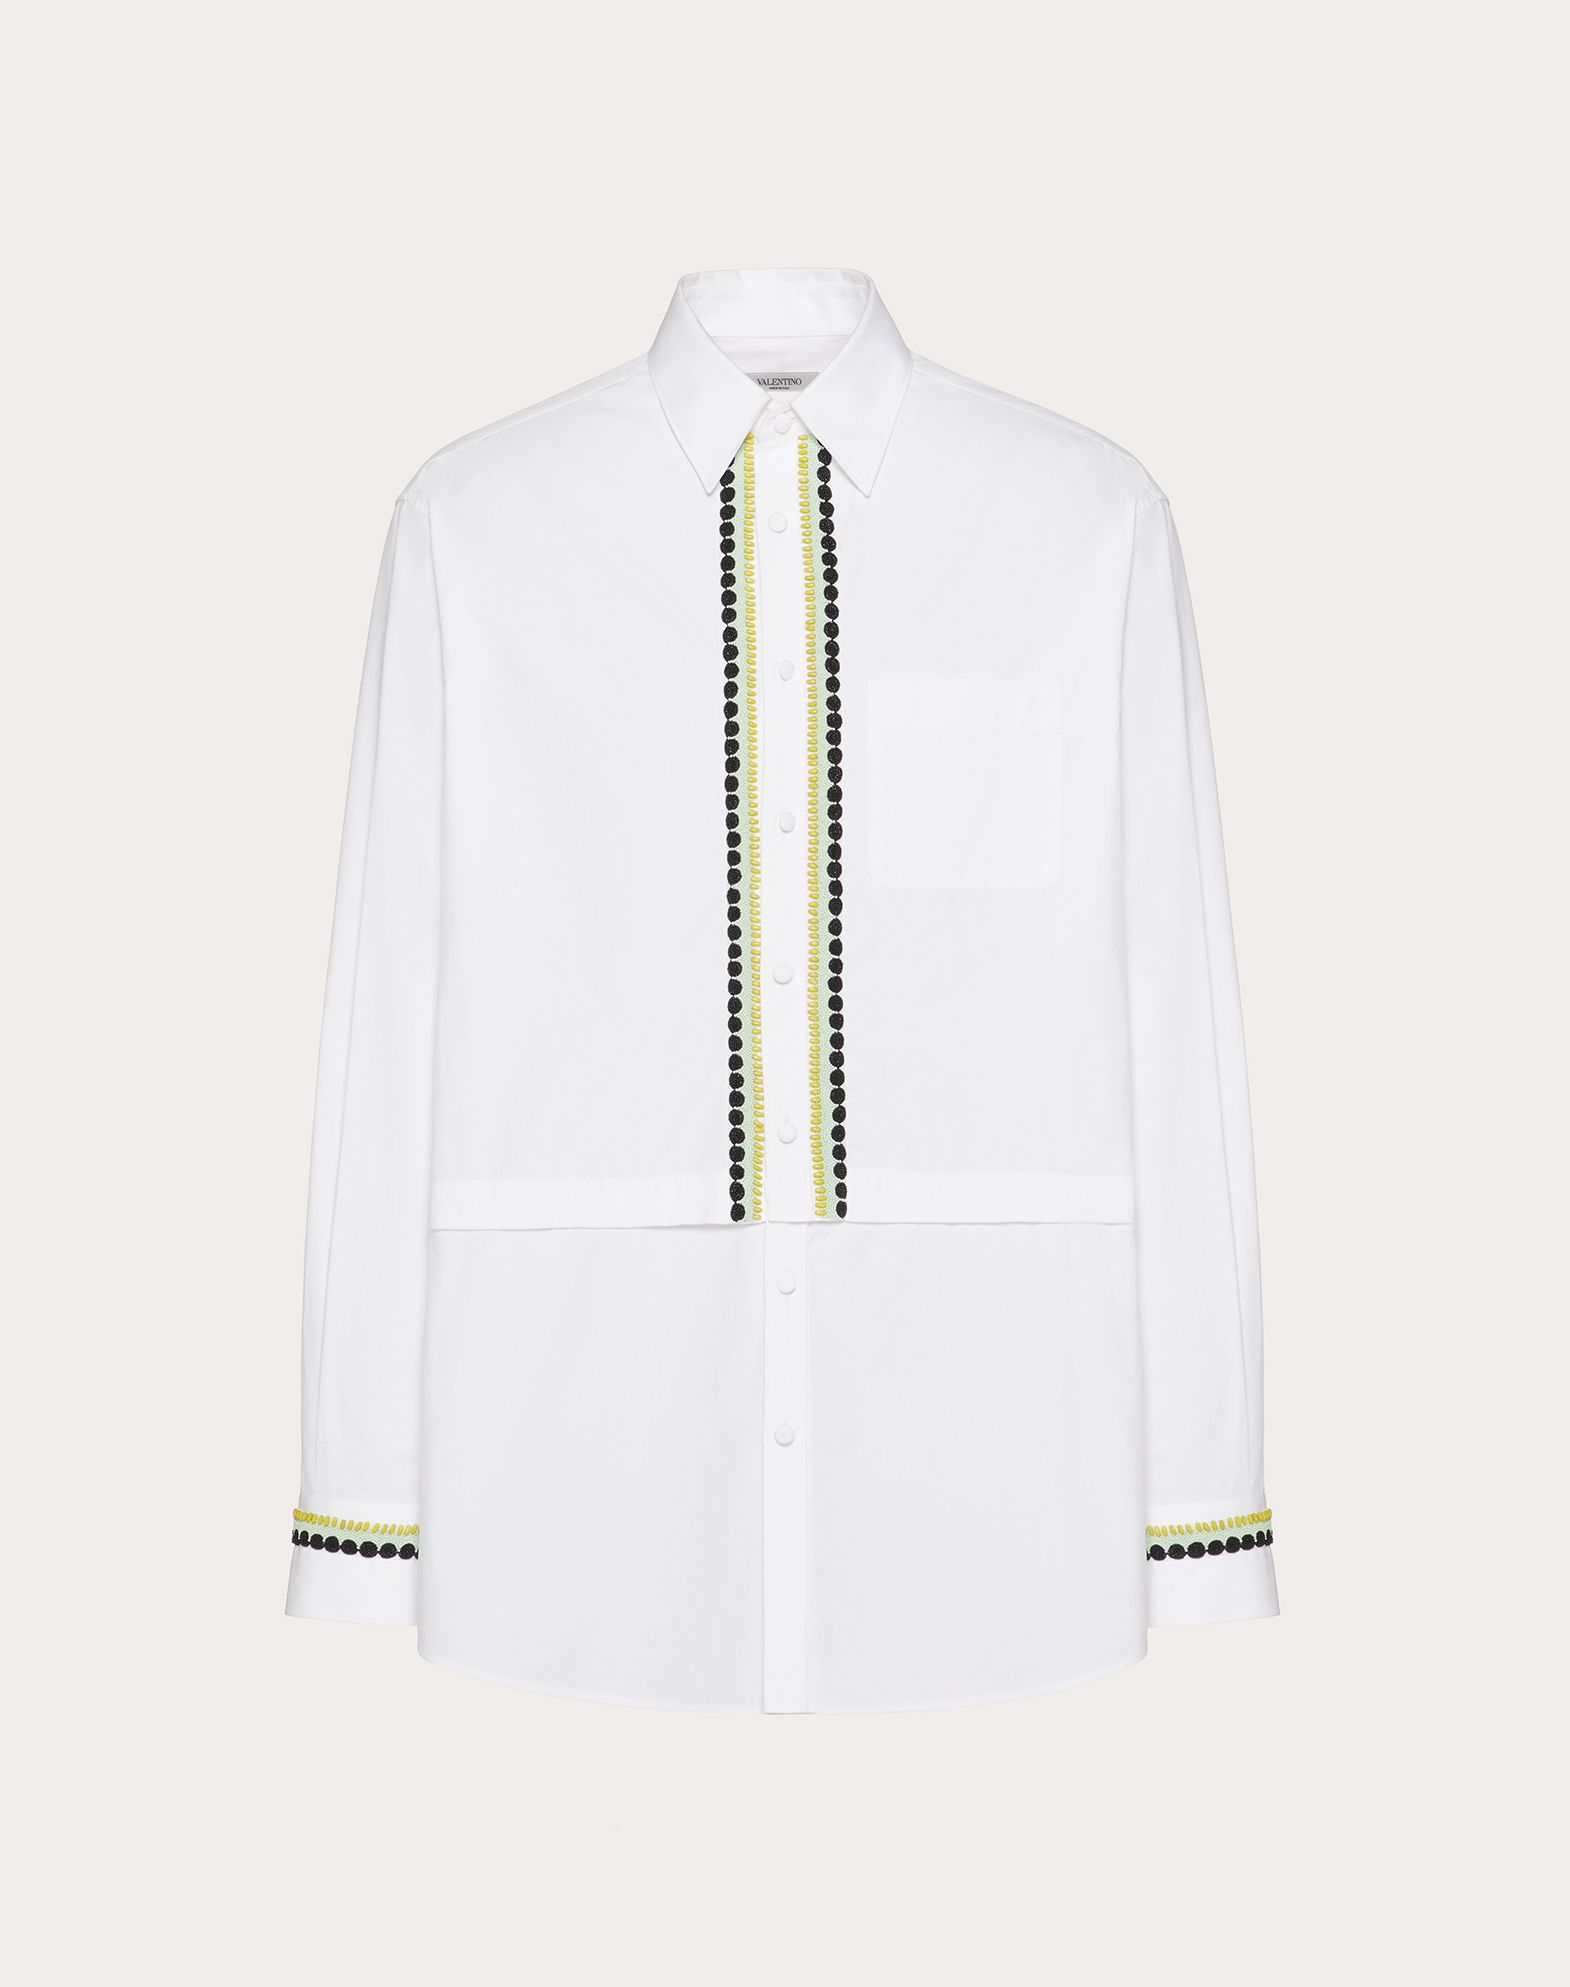 SEMI-OVERSIZE SHIRT WITH DECORATIVE EMBROIDERY